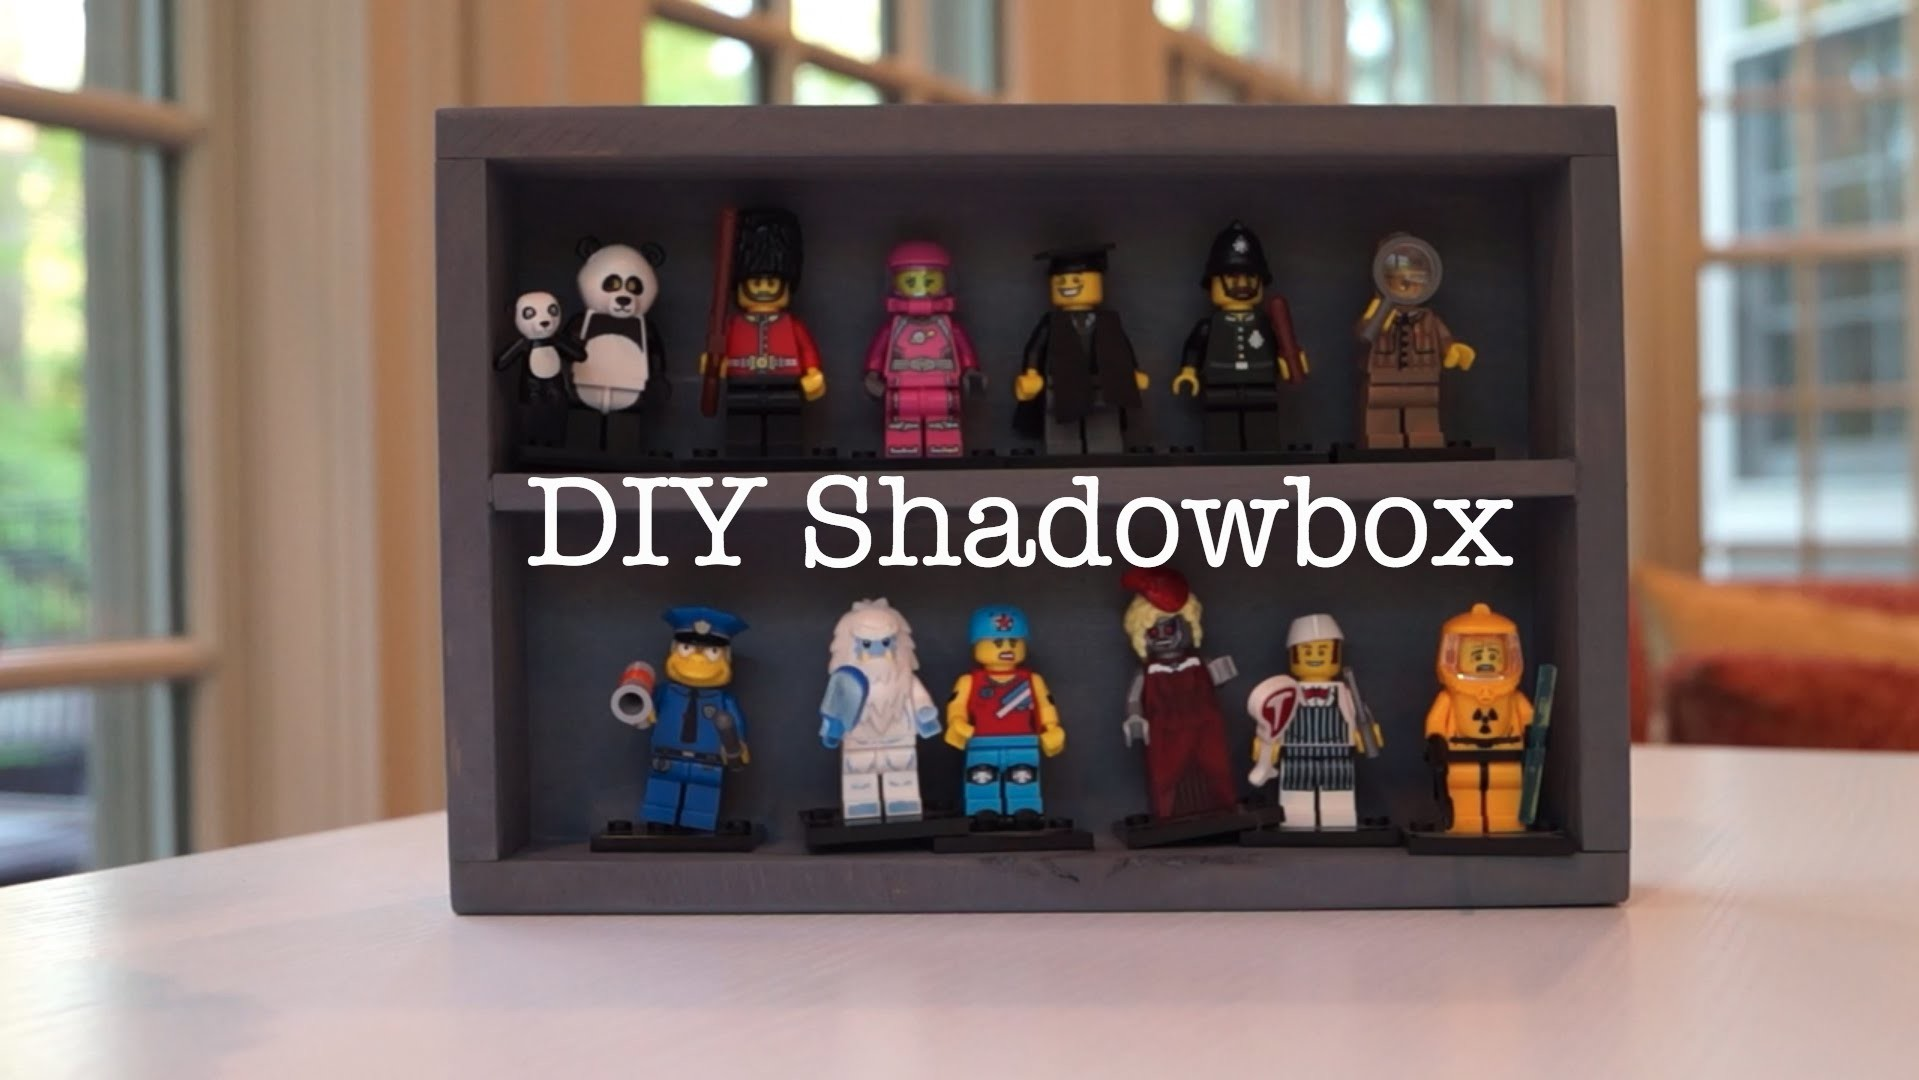 DIY Shadowbox